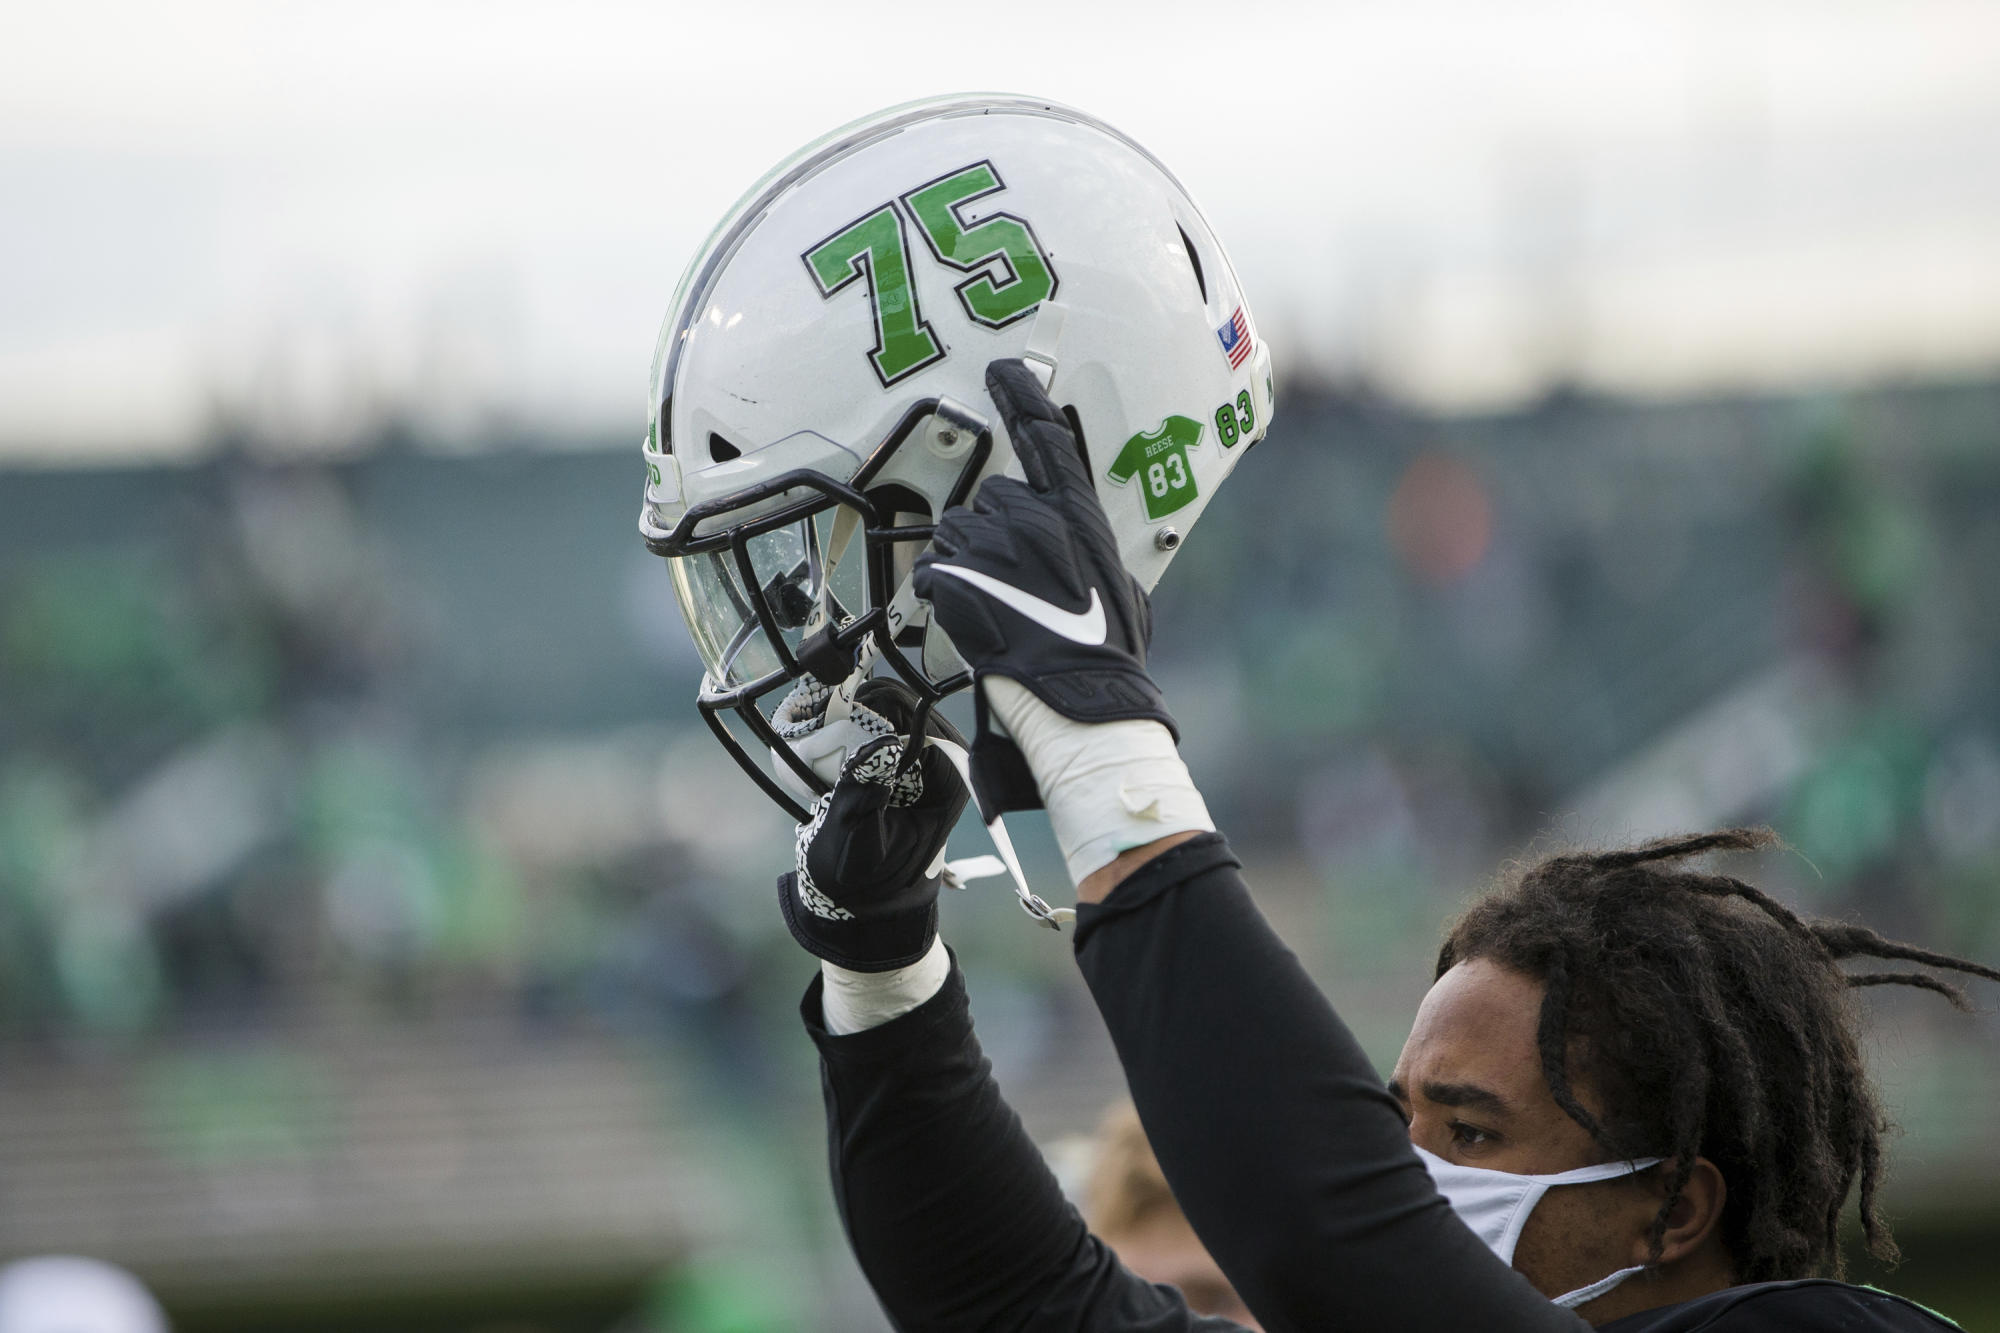 Marshall posts emotional win on 50th anniversary of horrific plane crash